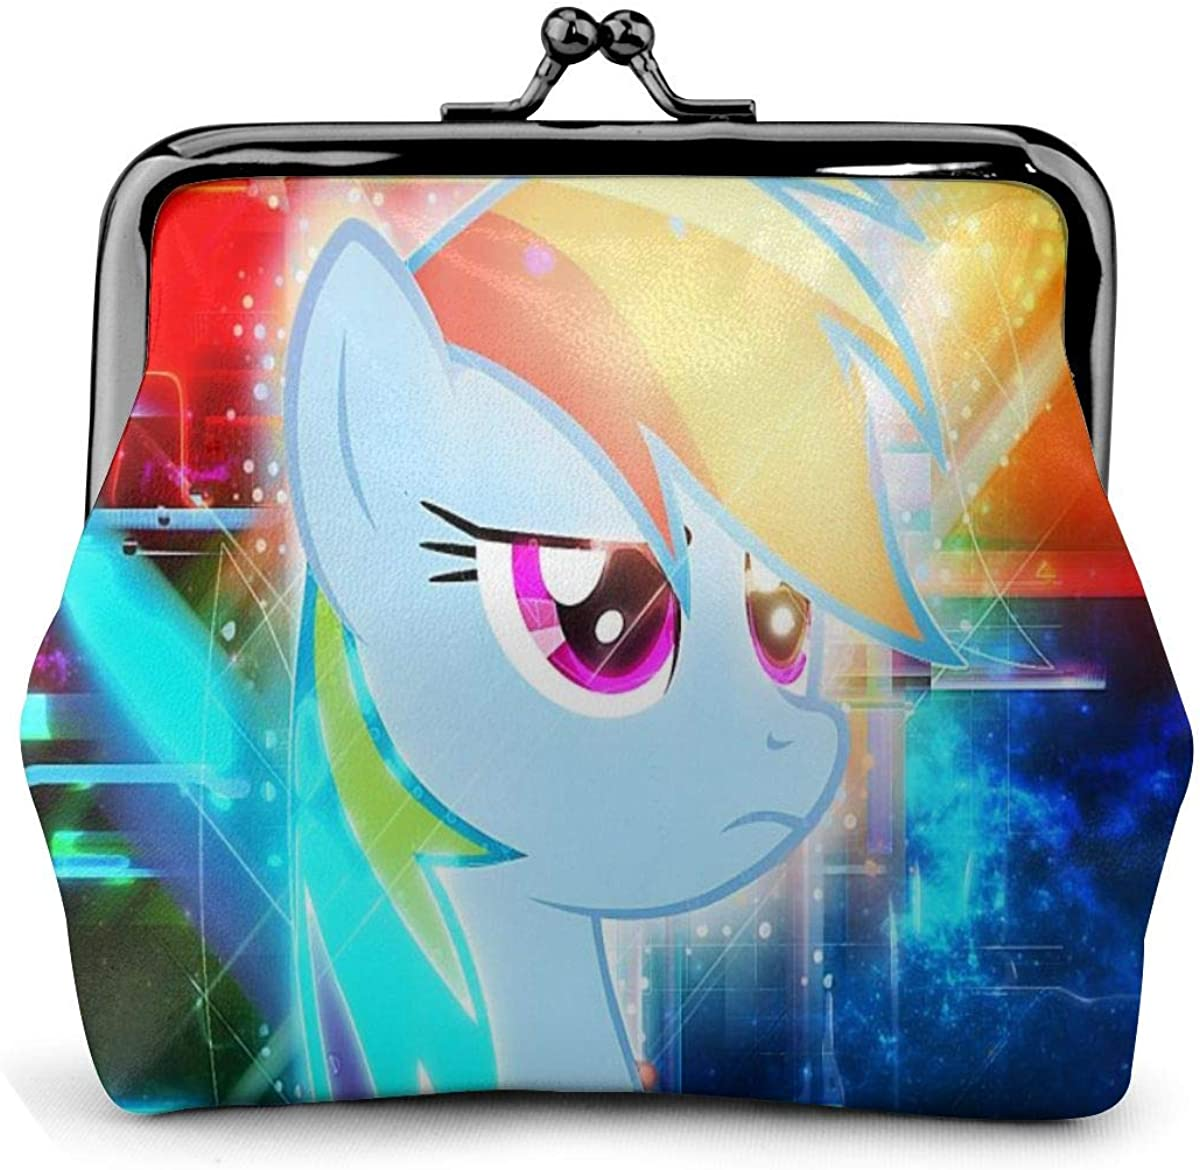 Coin Purse My Little Pony Rainbow Dash Coin Purse Wallet Purses Credit Cards Pouch Kiss Lock Exquisite Buckle Make Up Cellphone Women Leather Cash Coin Purses Wallets